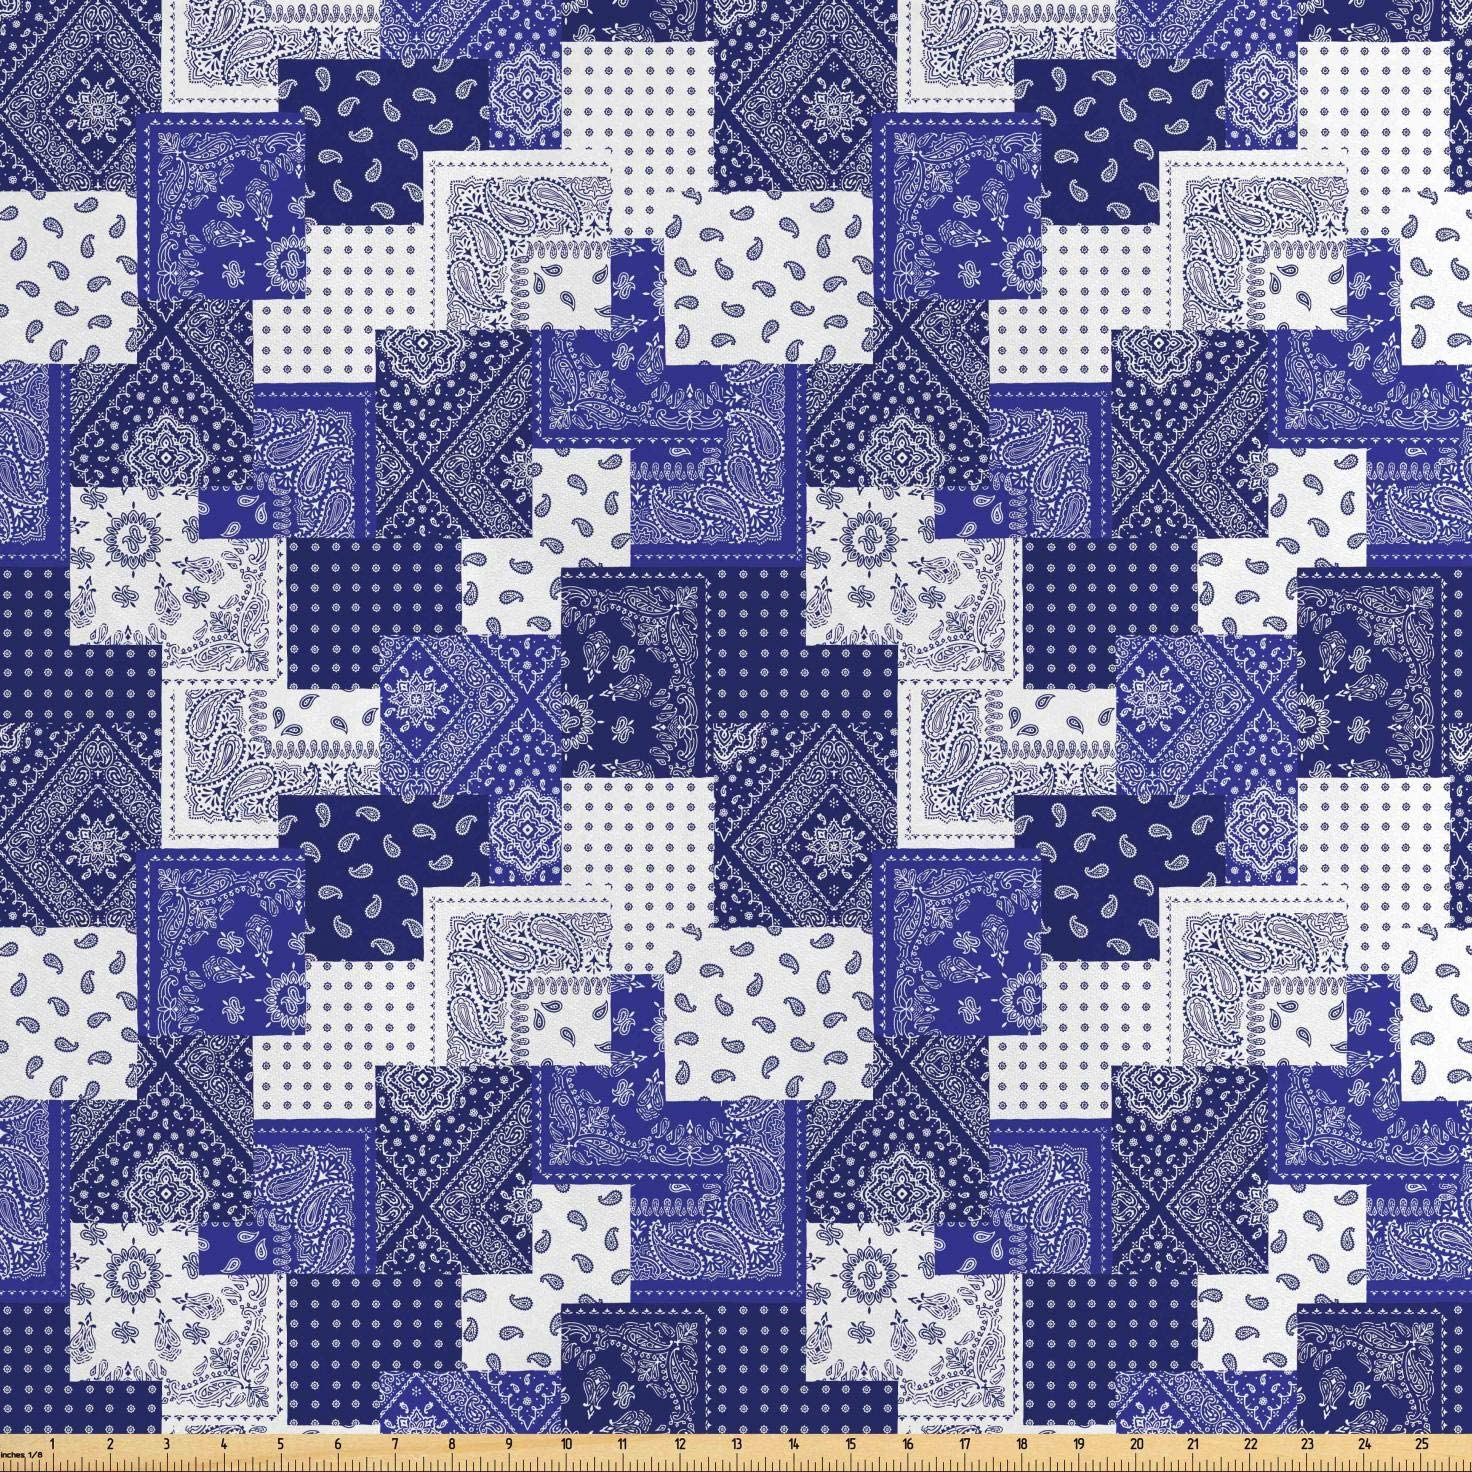 Lunarable Geometric Fabric by The Yard, Eastern Inspirations Canonical Paisley and Floral Composition Squares, Decorative Satin Fabric for Home Textiles and Crafts, 10 Yards, Dark Blue Cobalt Blue